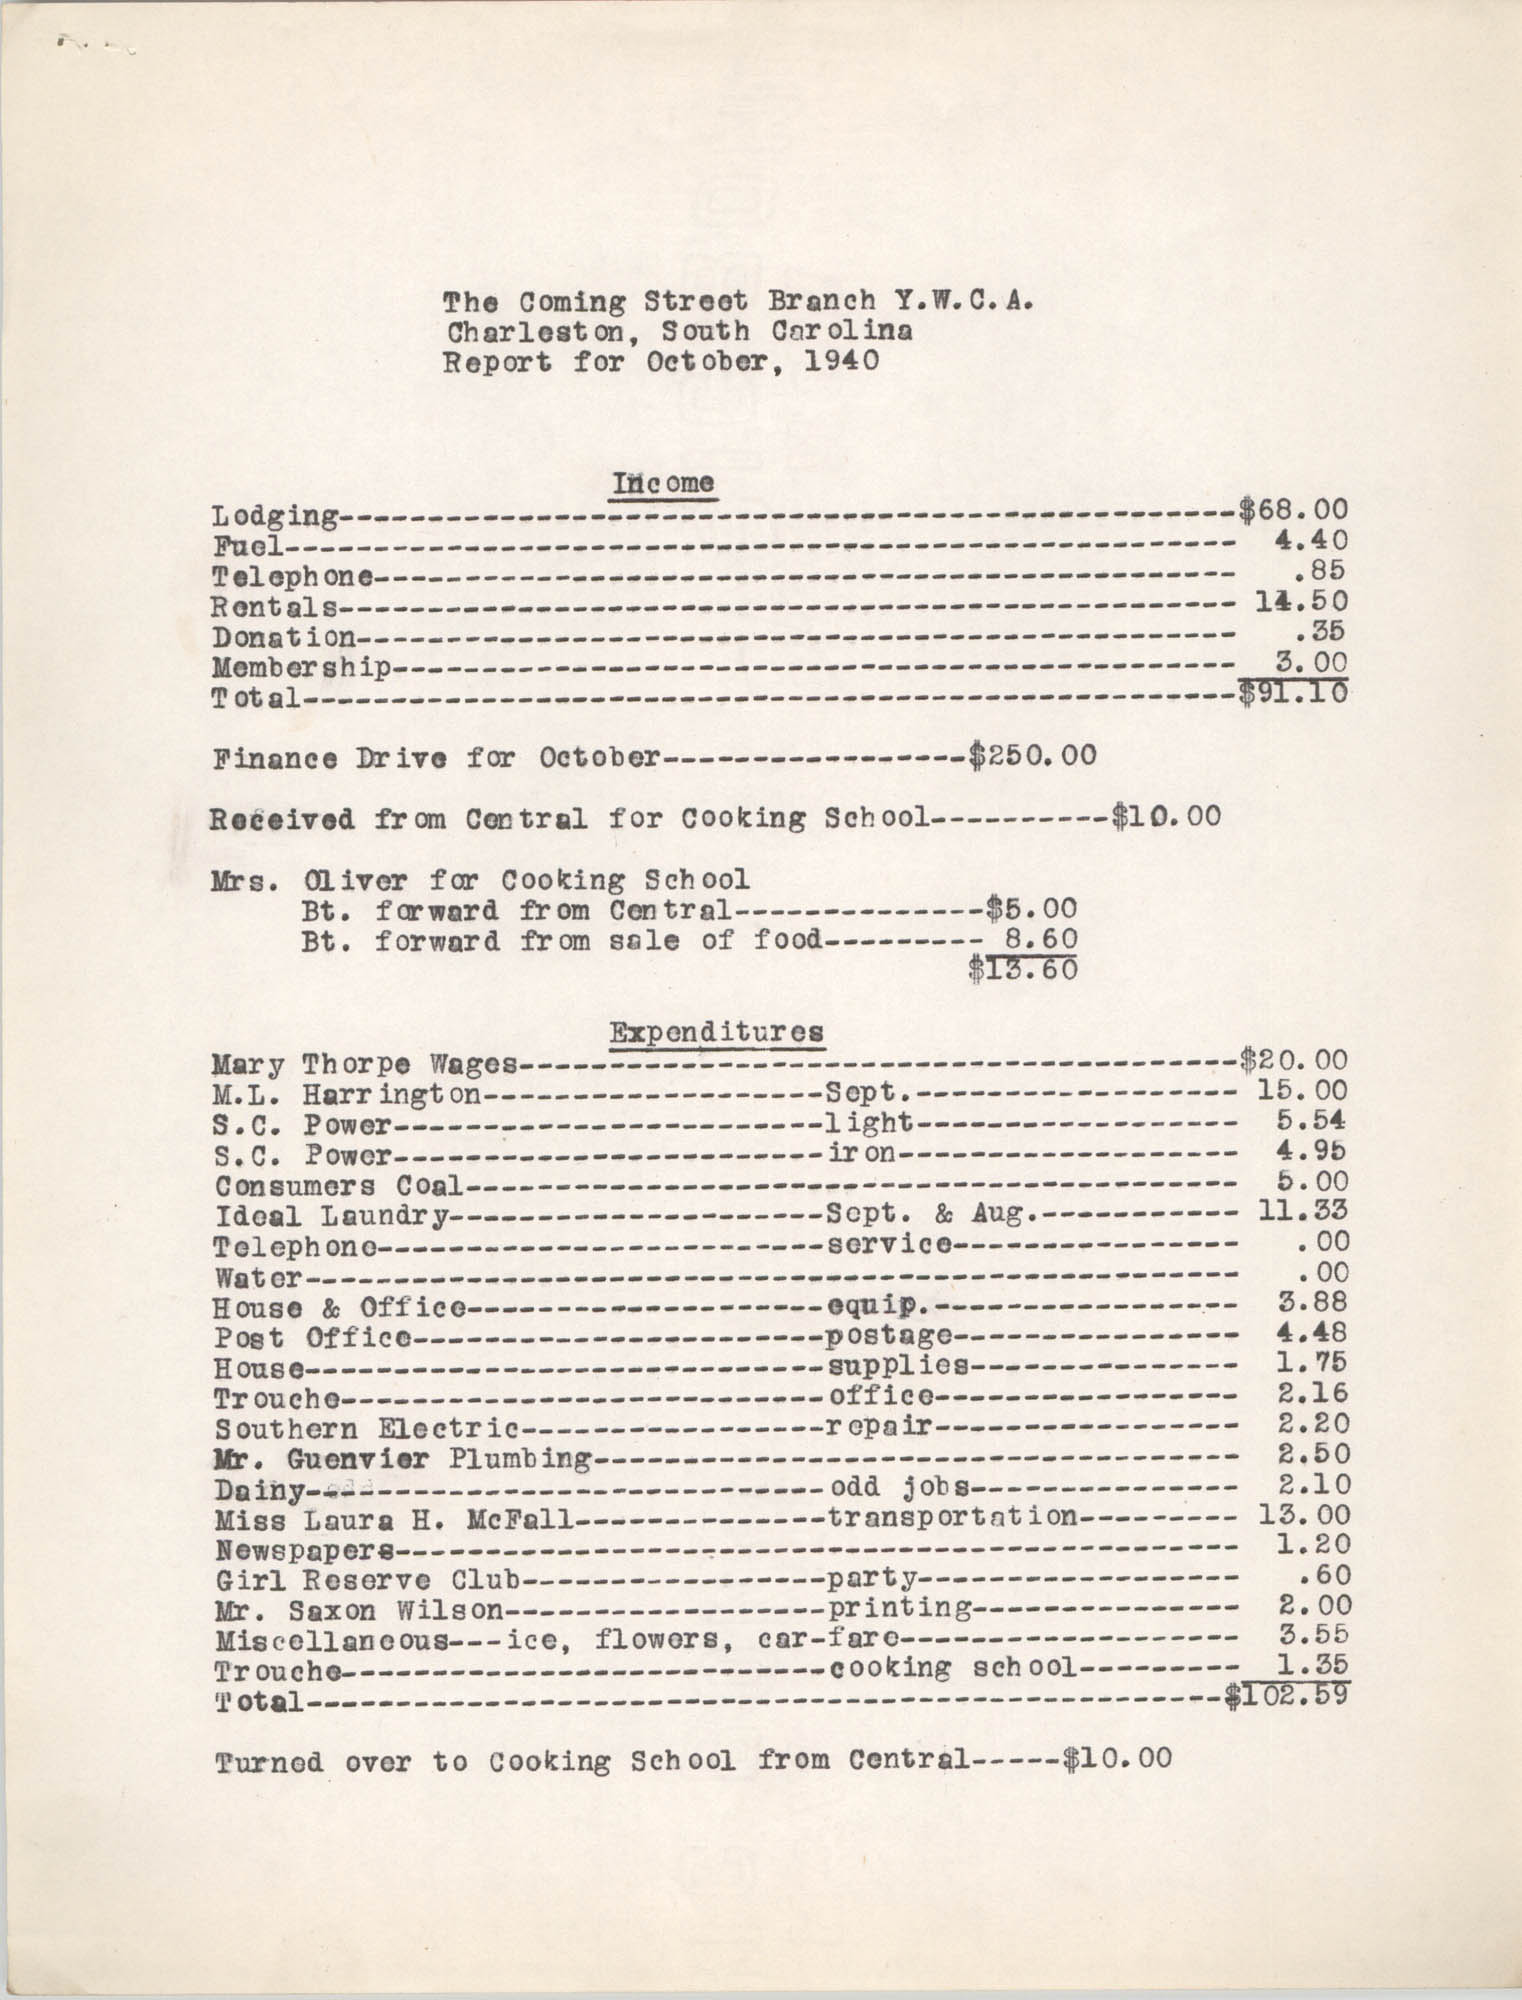 Monthly Report for the Coming Street Y.W.C.A., Employment and Groups, October 1940, Page 2